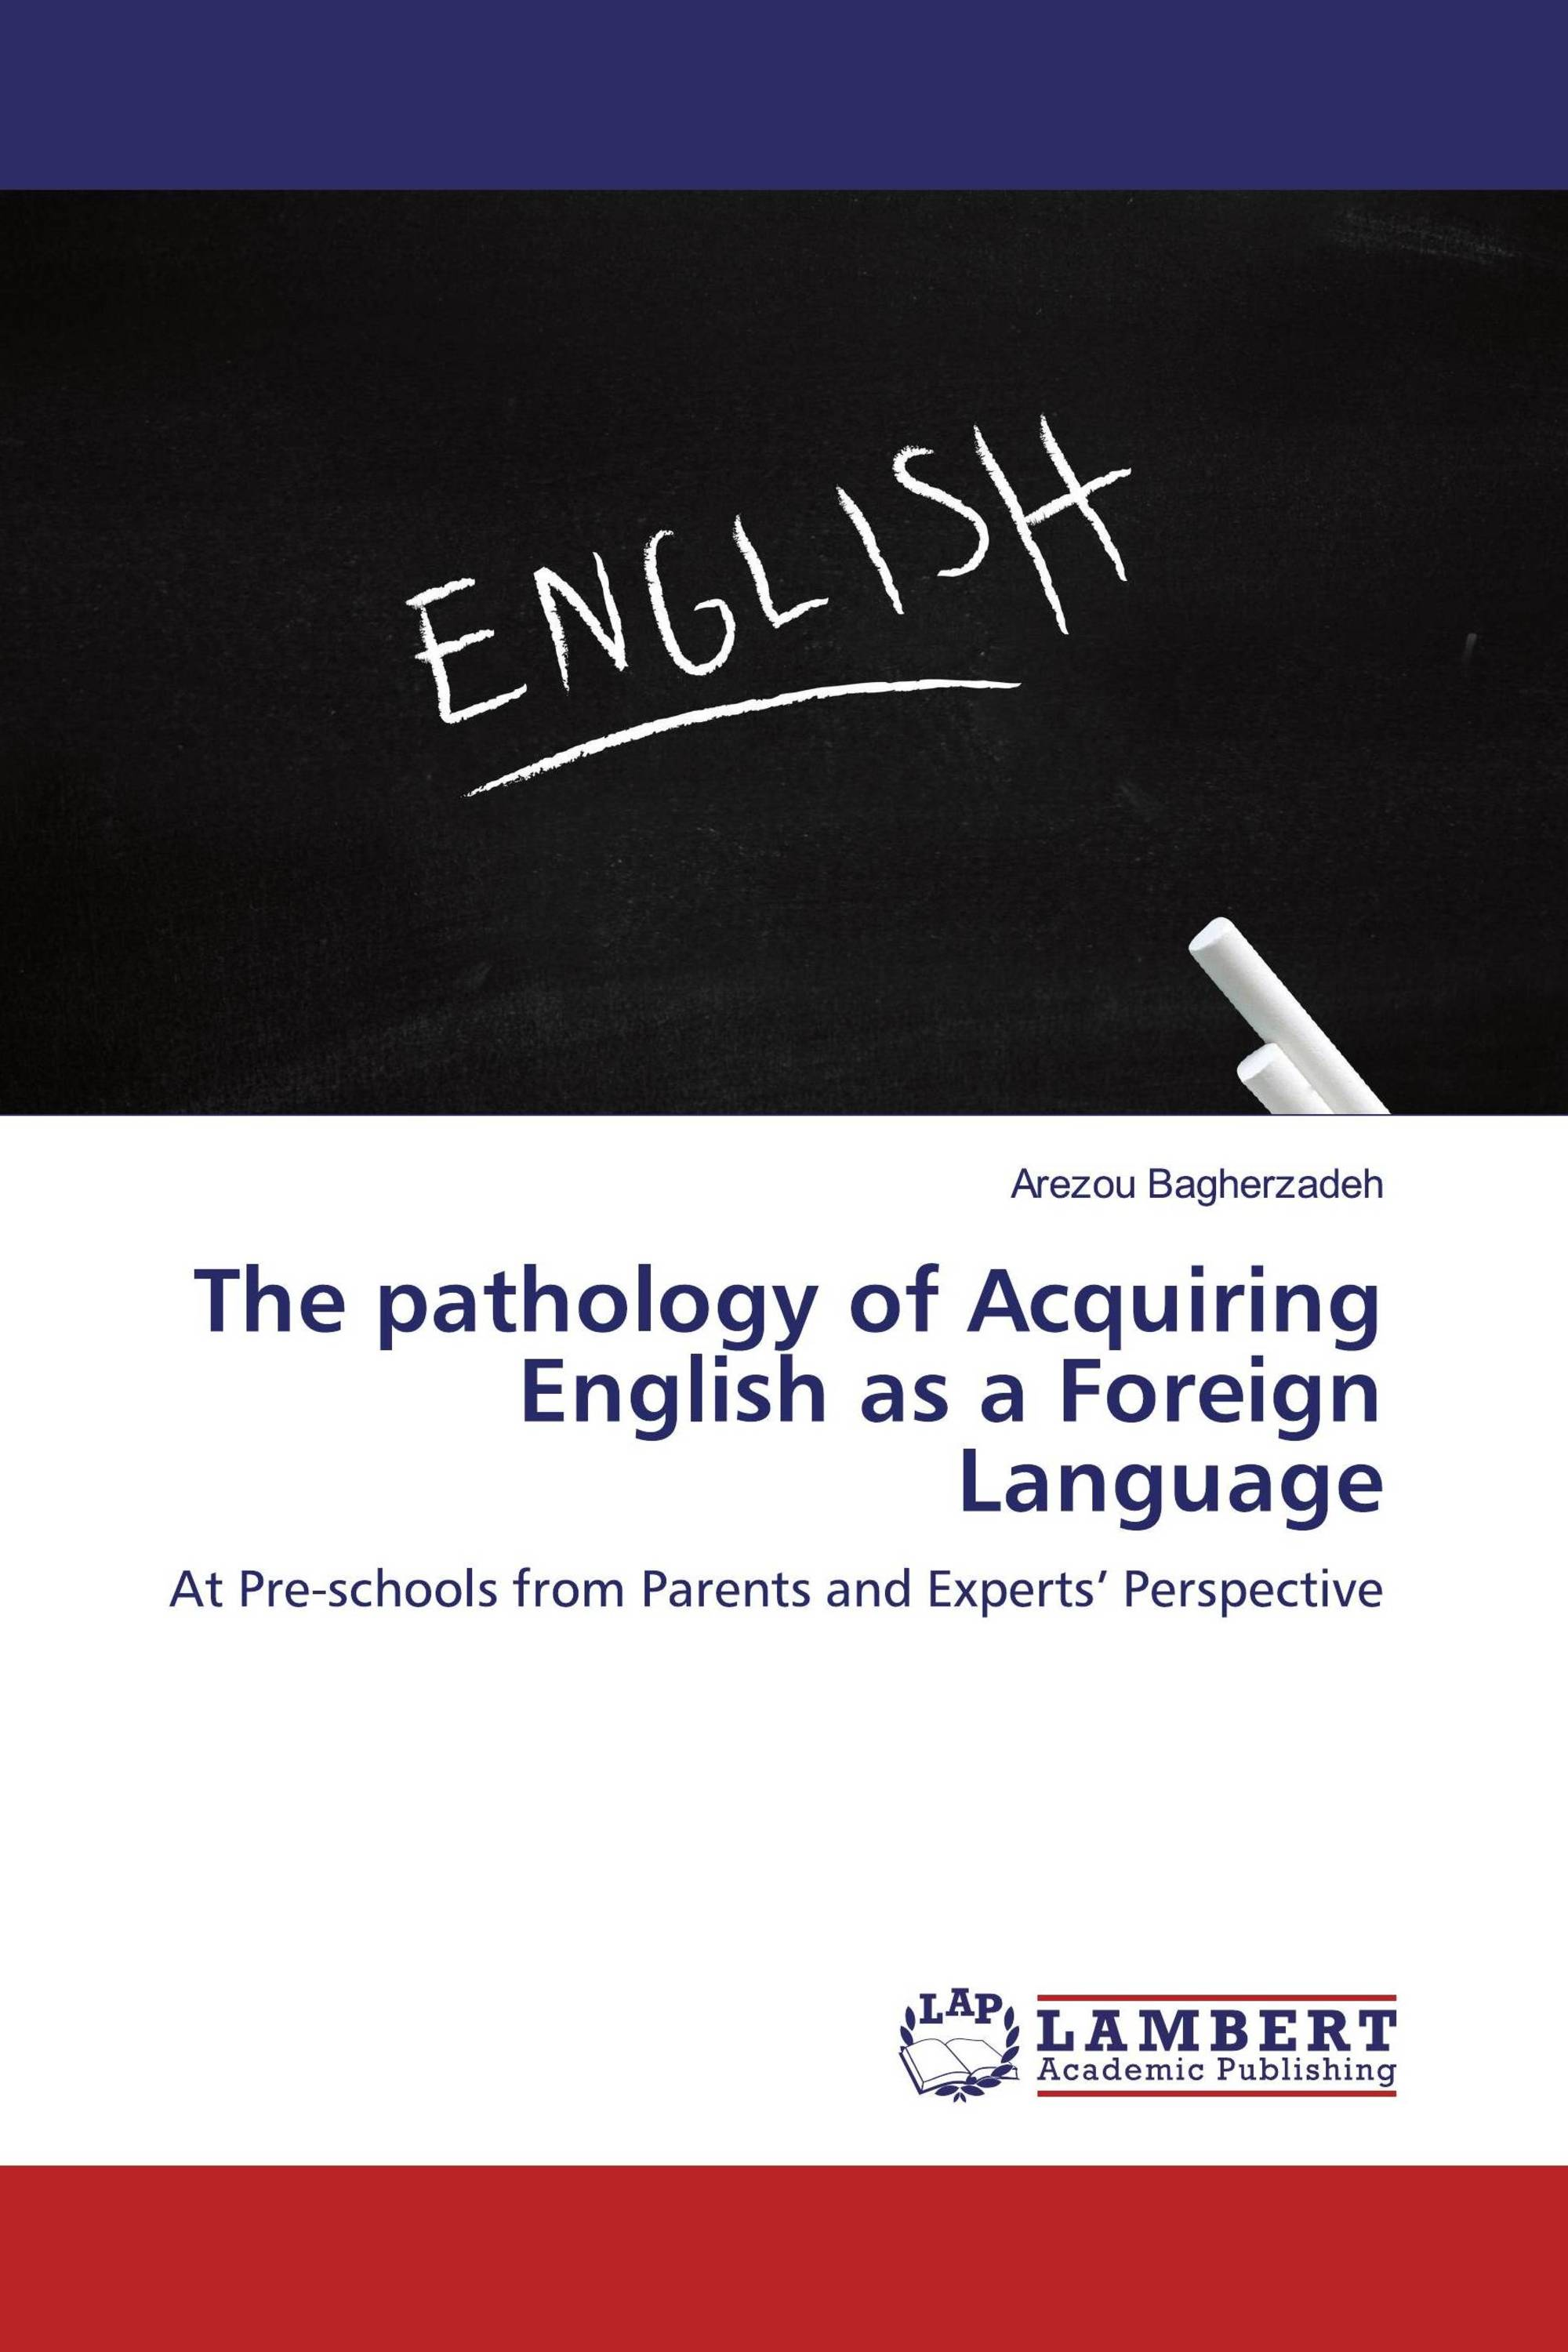 The pathology of Acquiring English as a Foreign Language